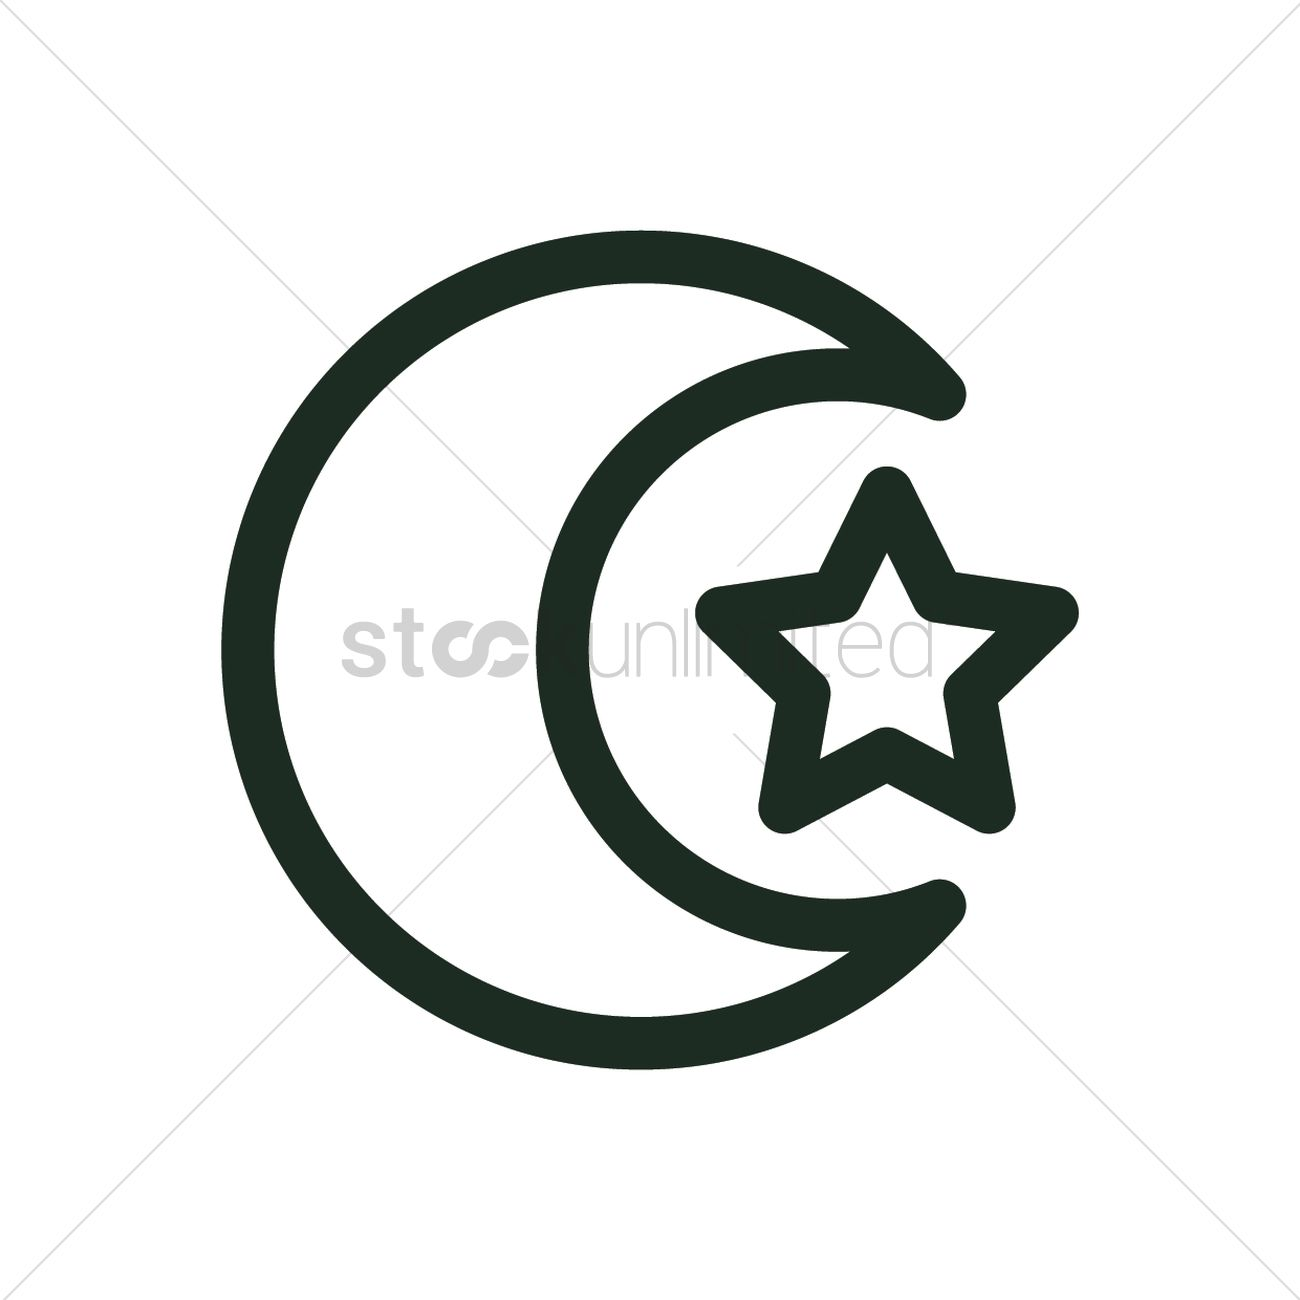 Islamic Symbol Vector Image 2024496 Stockunlimited